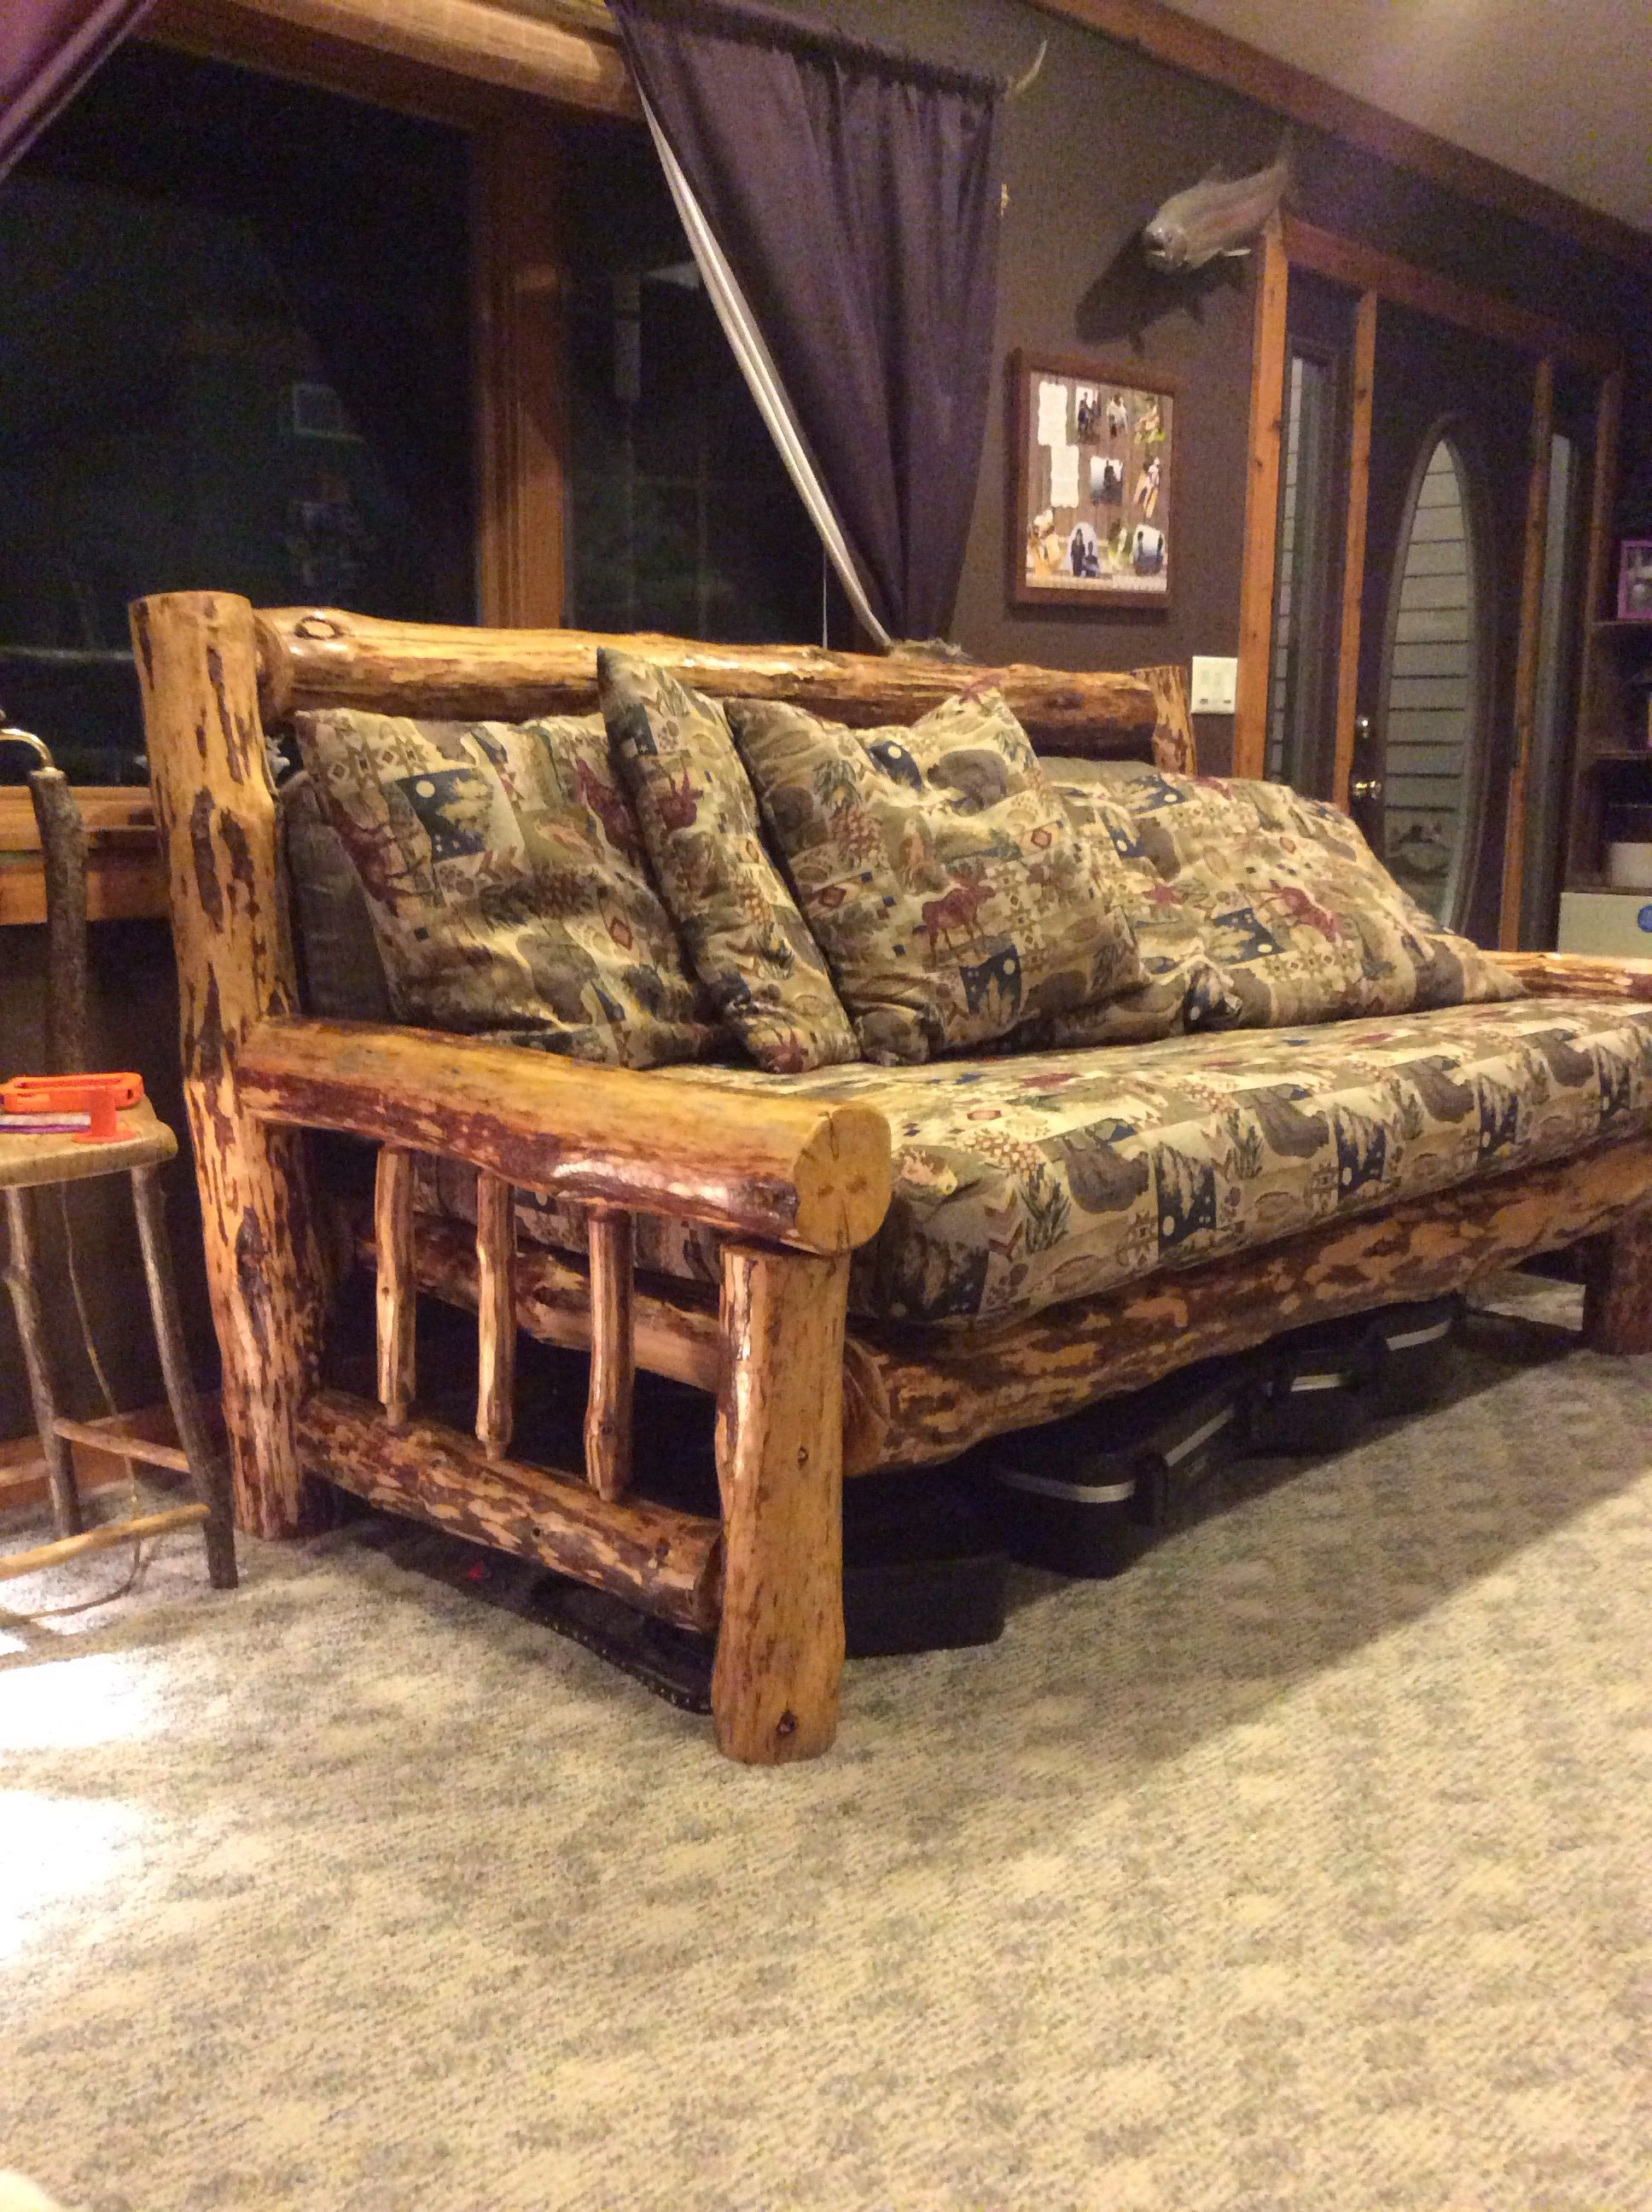 Big Comfy Couch Our Handmade Furniture In 2019 Rustic